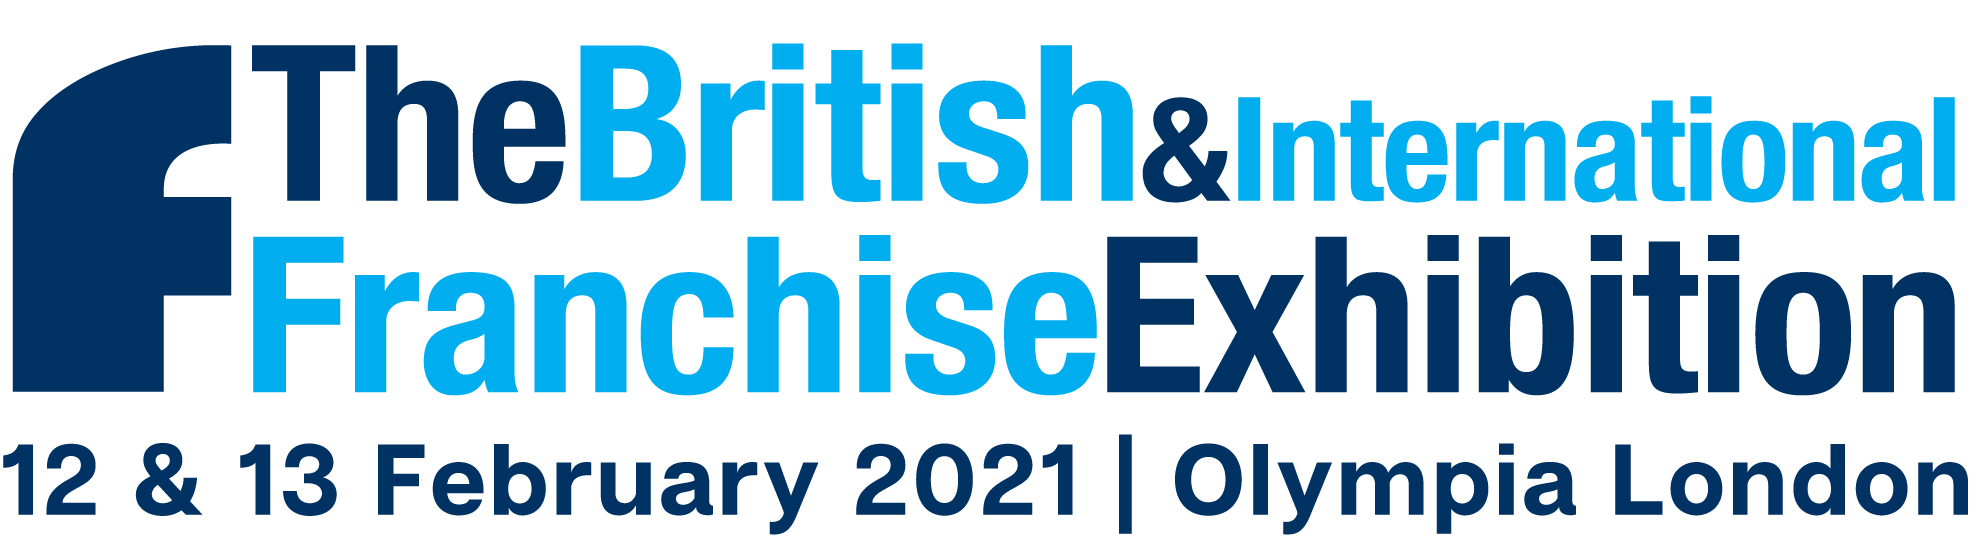 The British & International Franchise Exhibition 2021